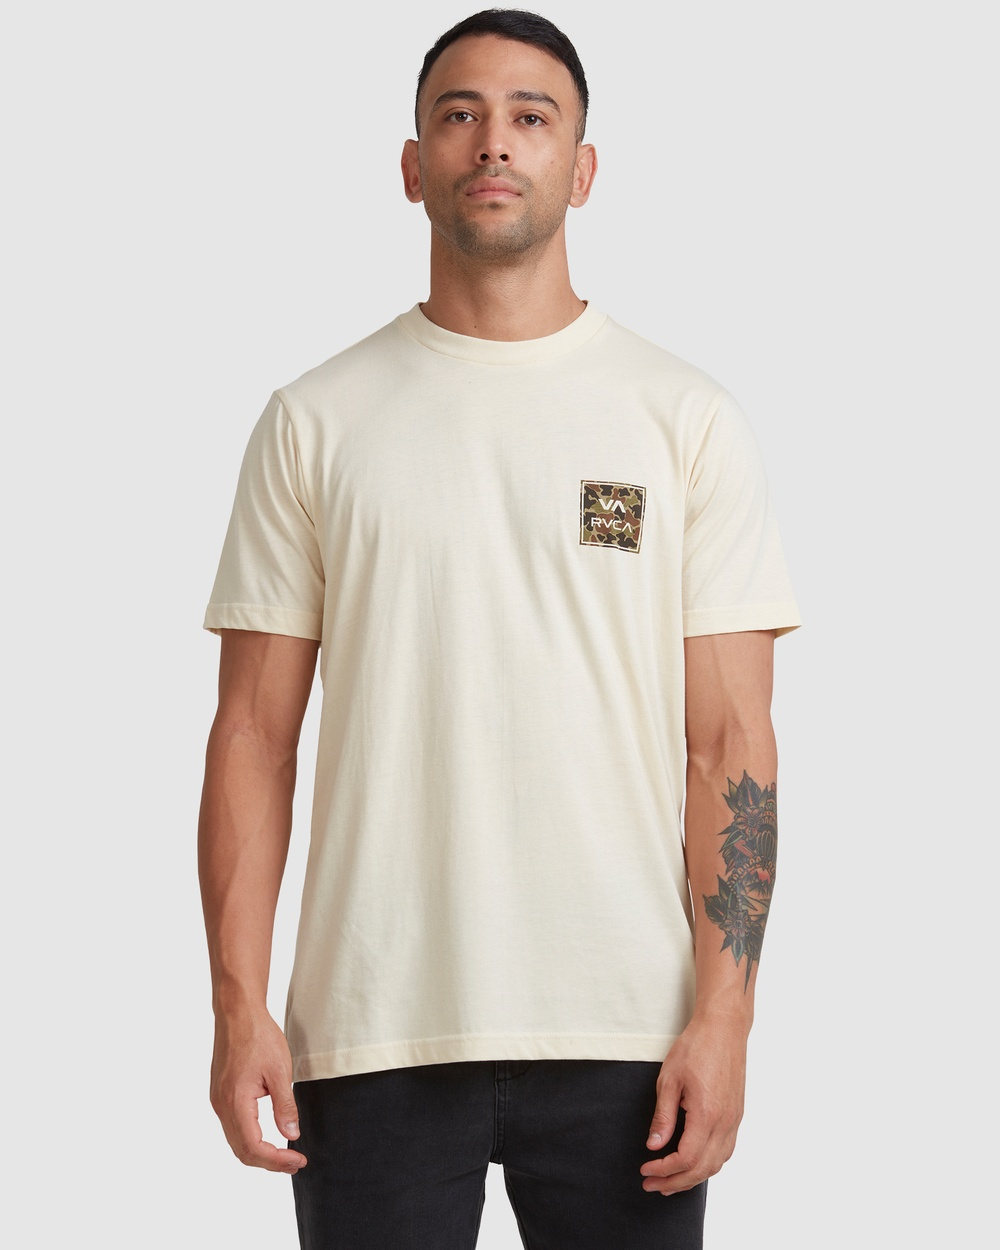 RVCA - Va All The Ways Multi Tee - T-Shirts & Singlets (BLEACHED) Va All The Ways Multi Tee